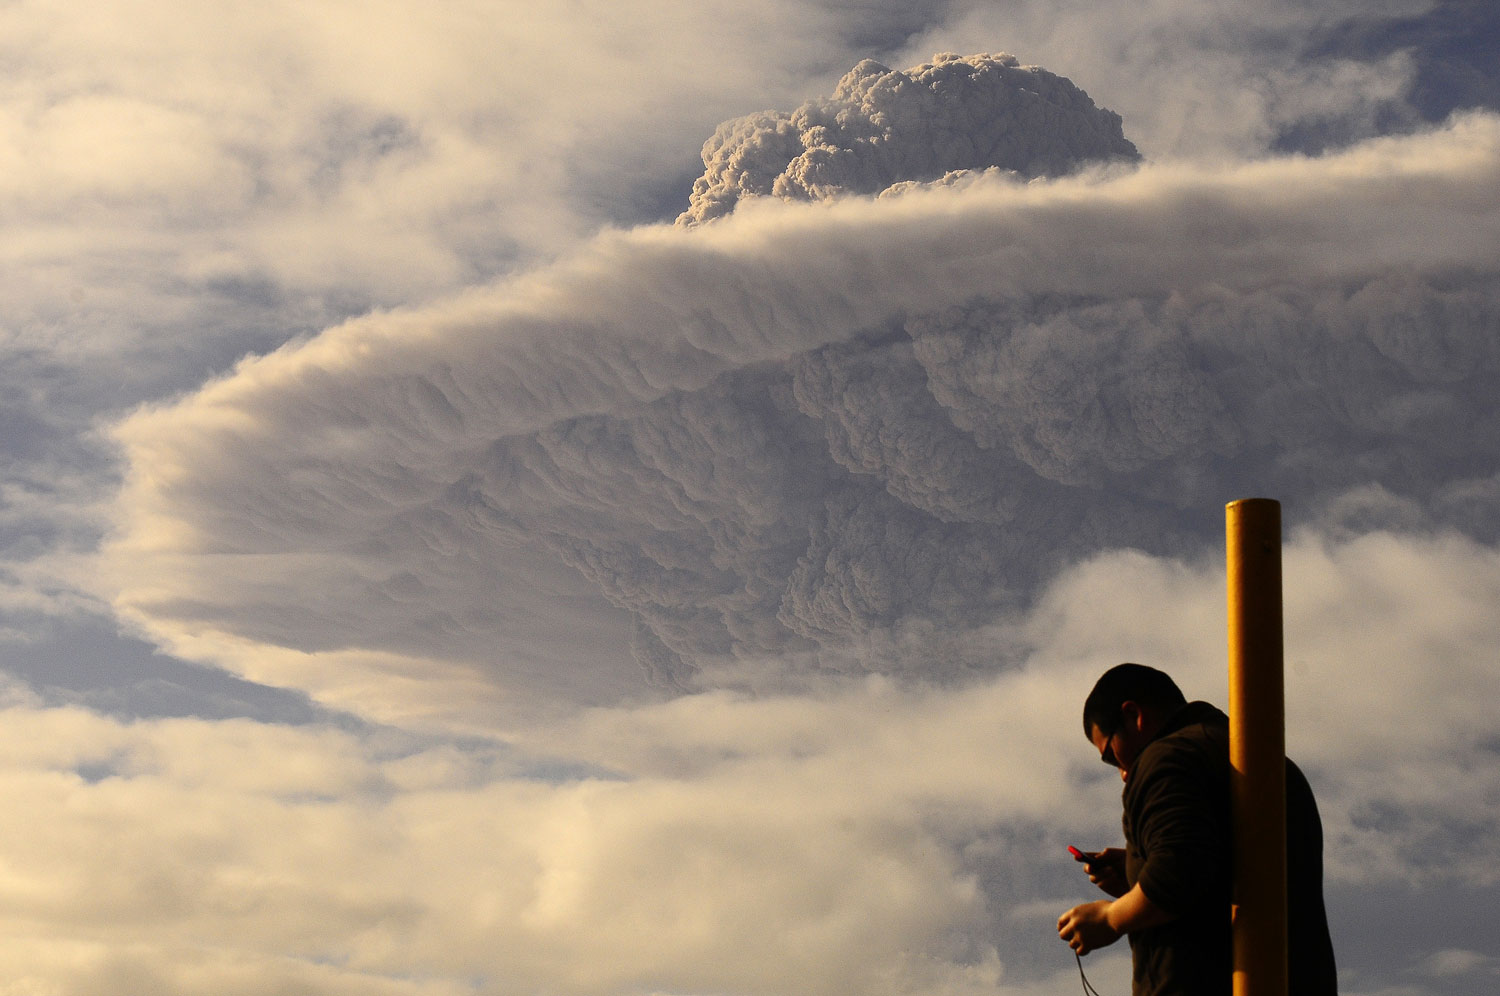 A tourist watches the cloud of ash billowing from Puyehue volcano at a town in southern Chile, June 5, 2011.